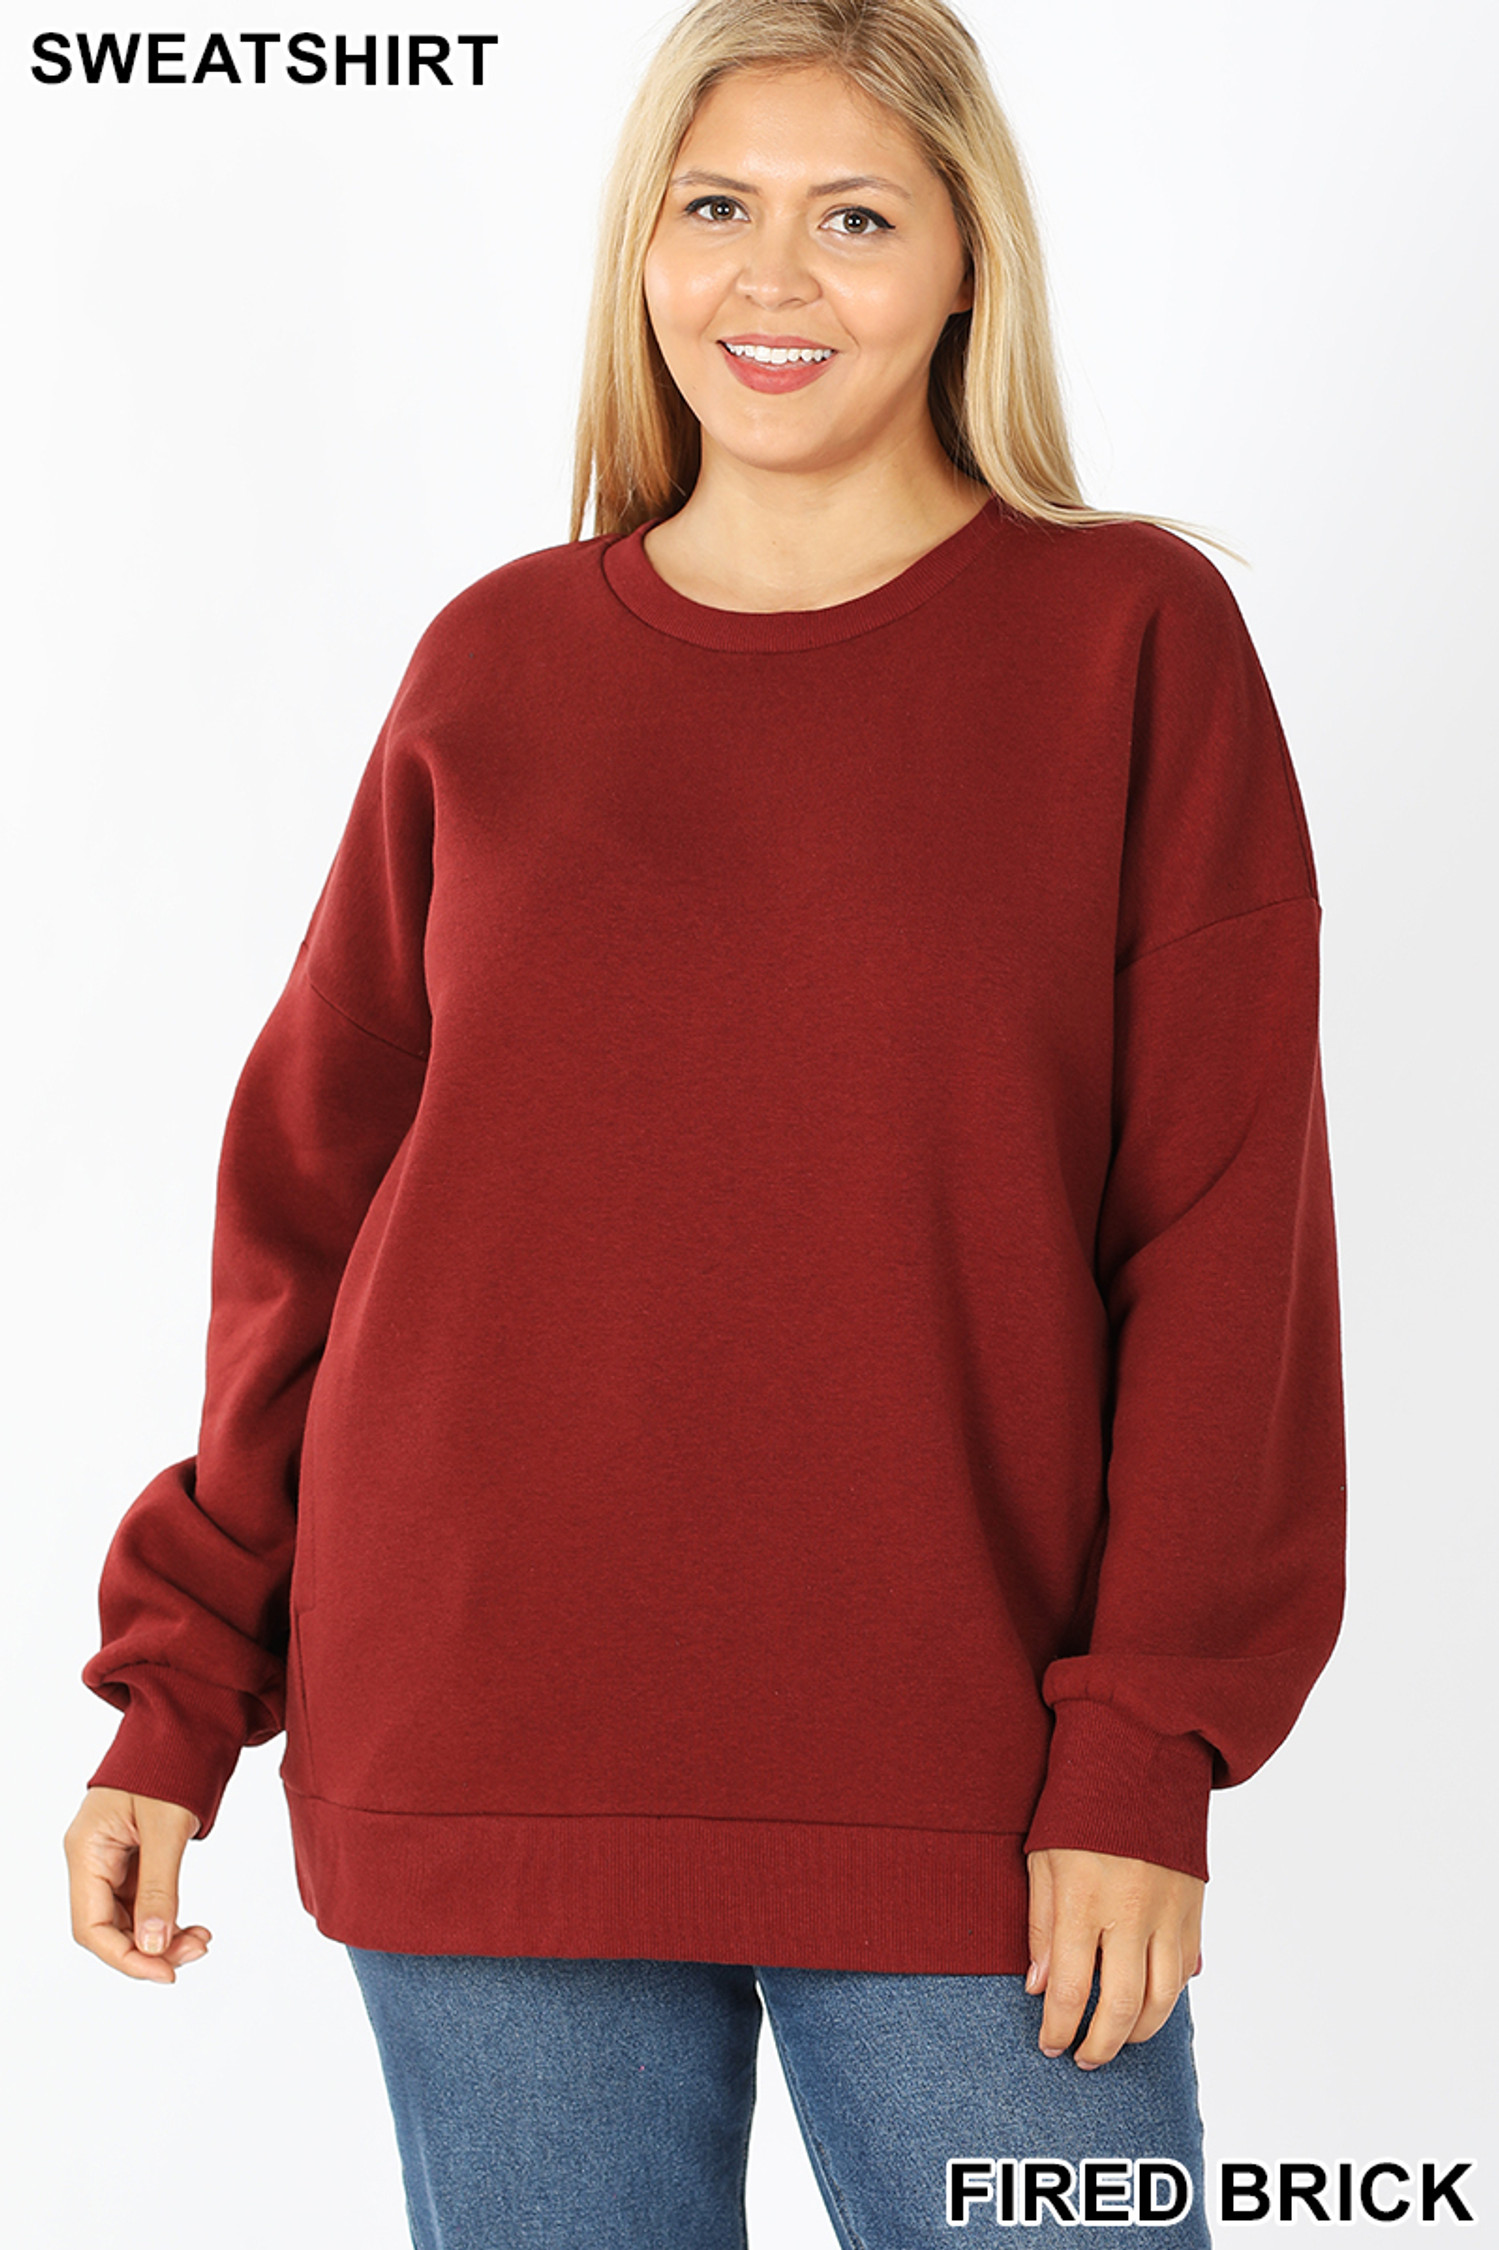 Front image of Fired Brick Cotton Round Crew Neck Plus Size Sweatshirt with Side Pockets